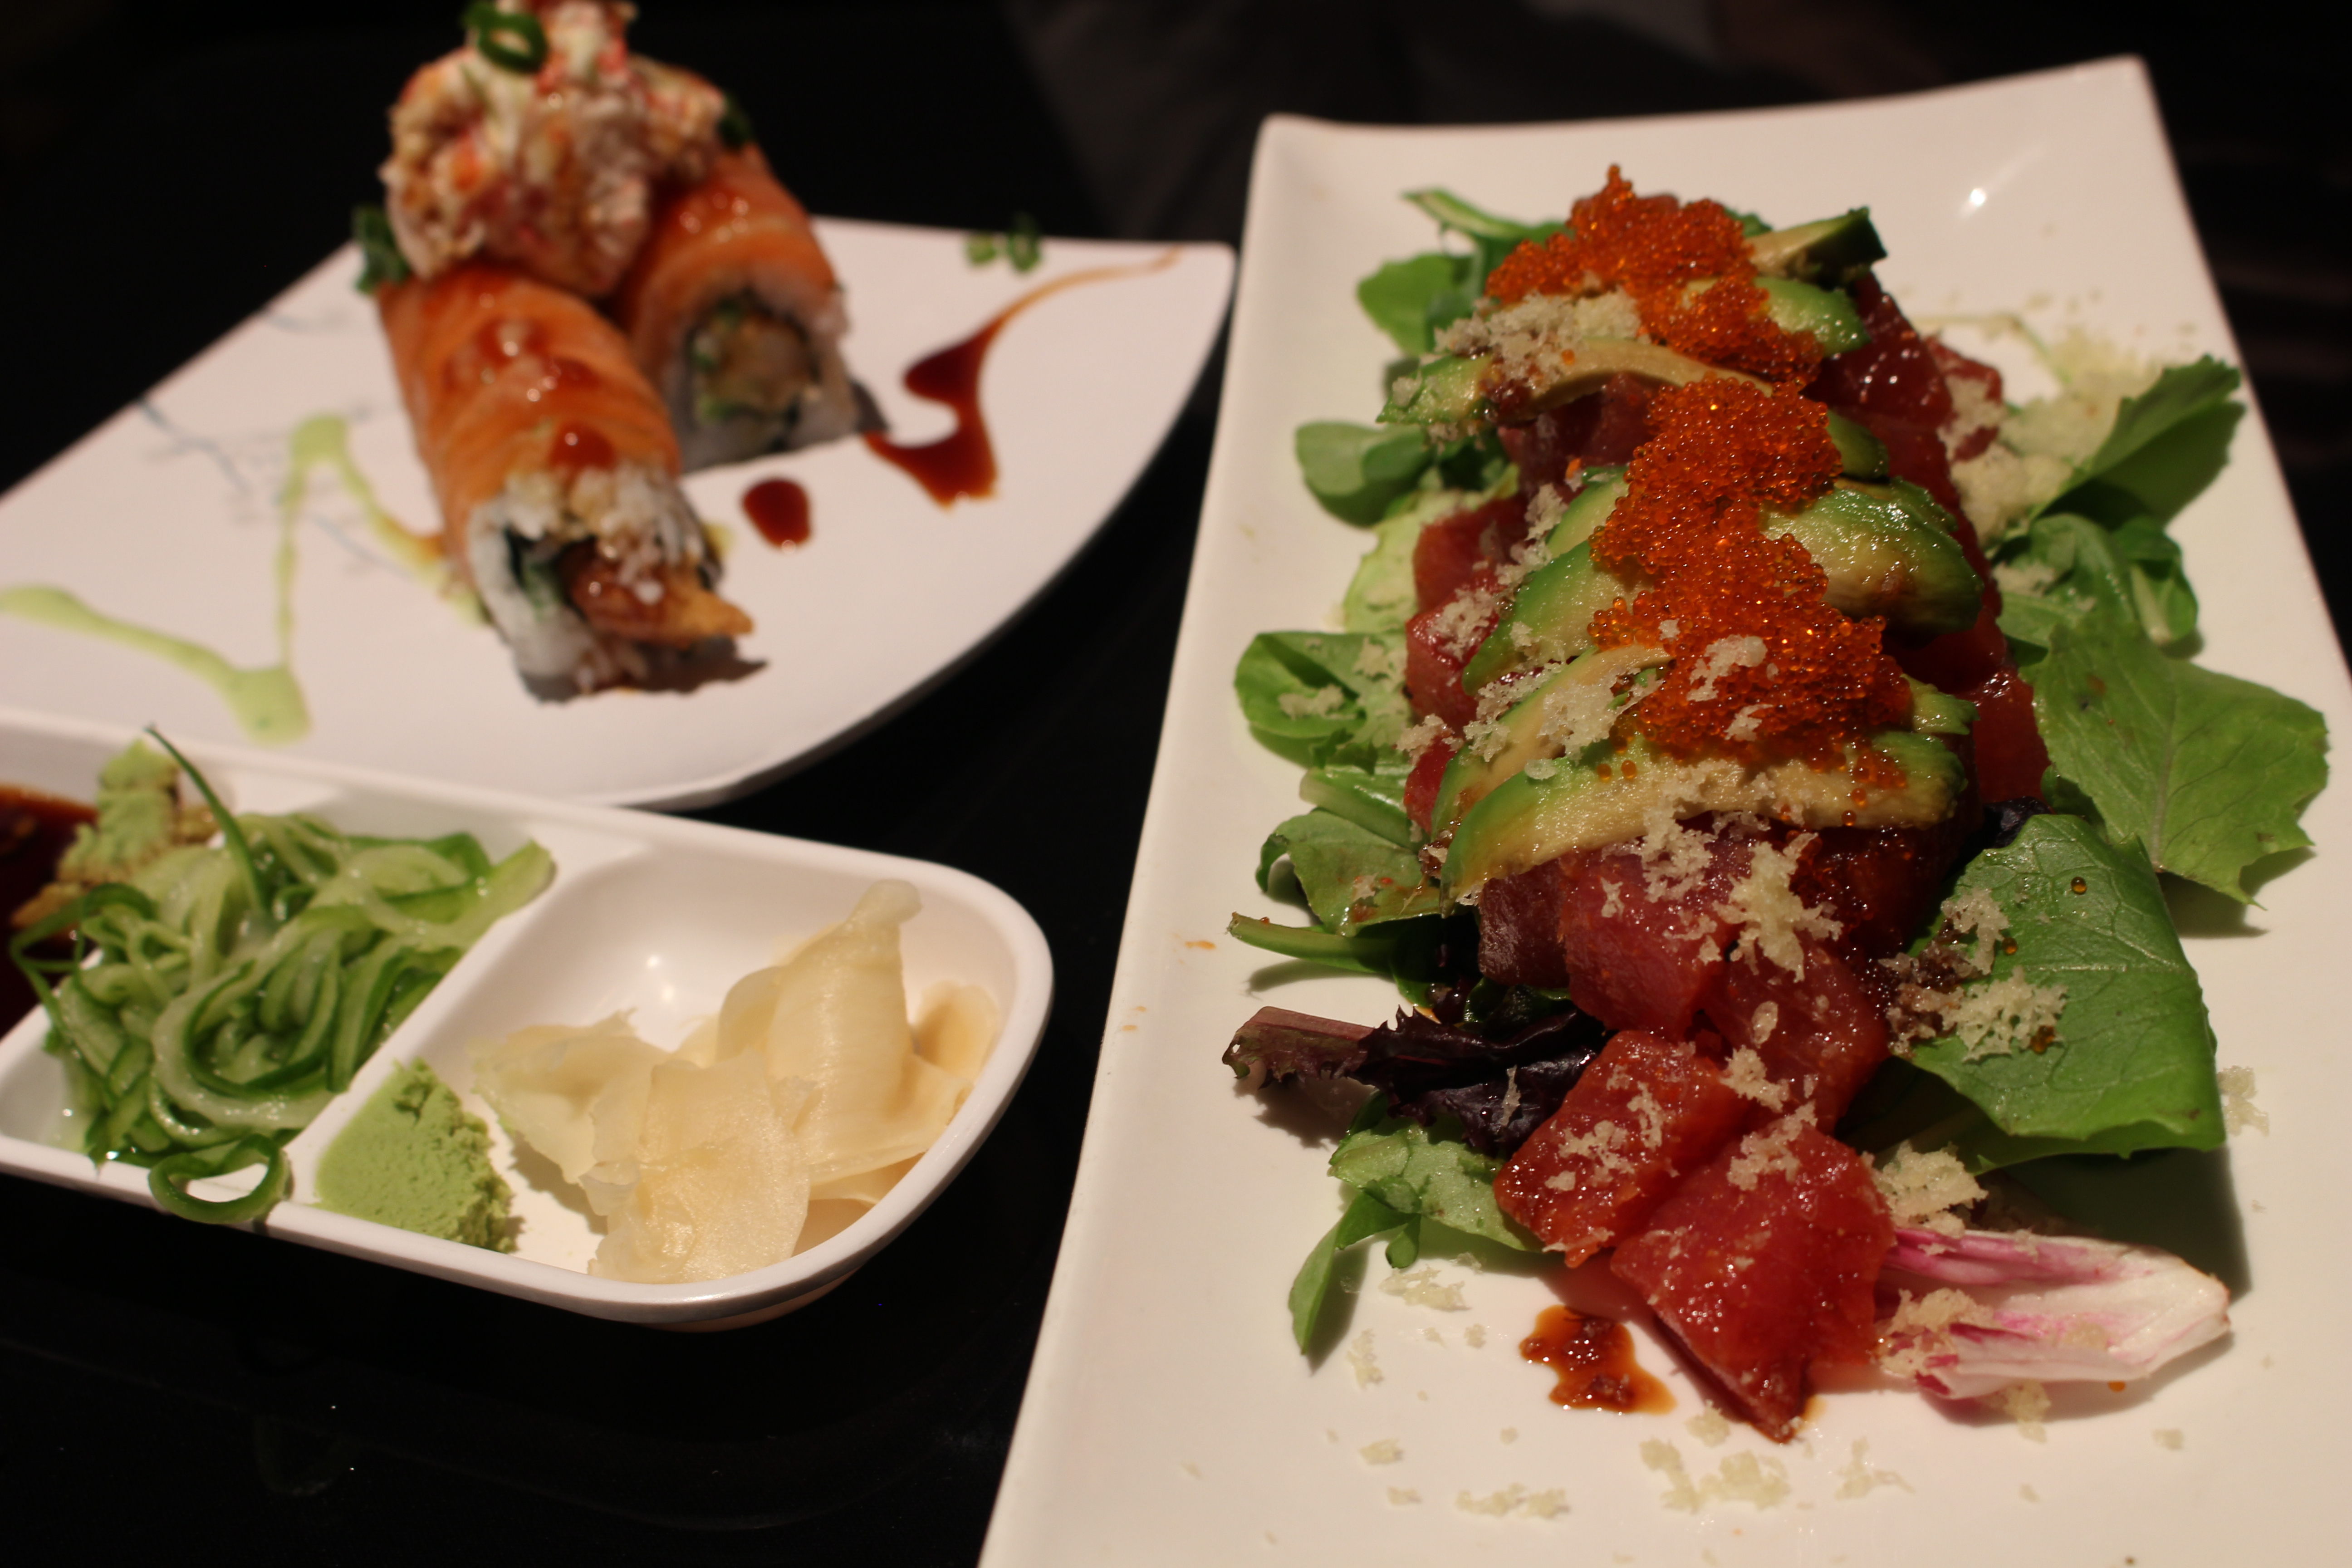 The Best Asian Food in Reno